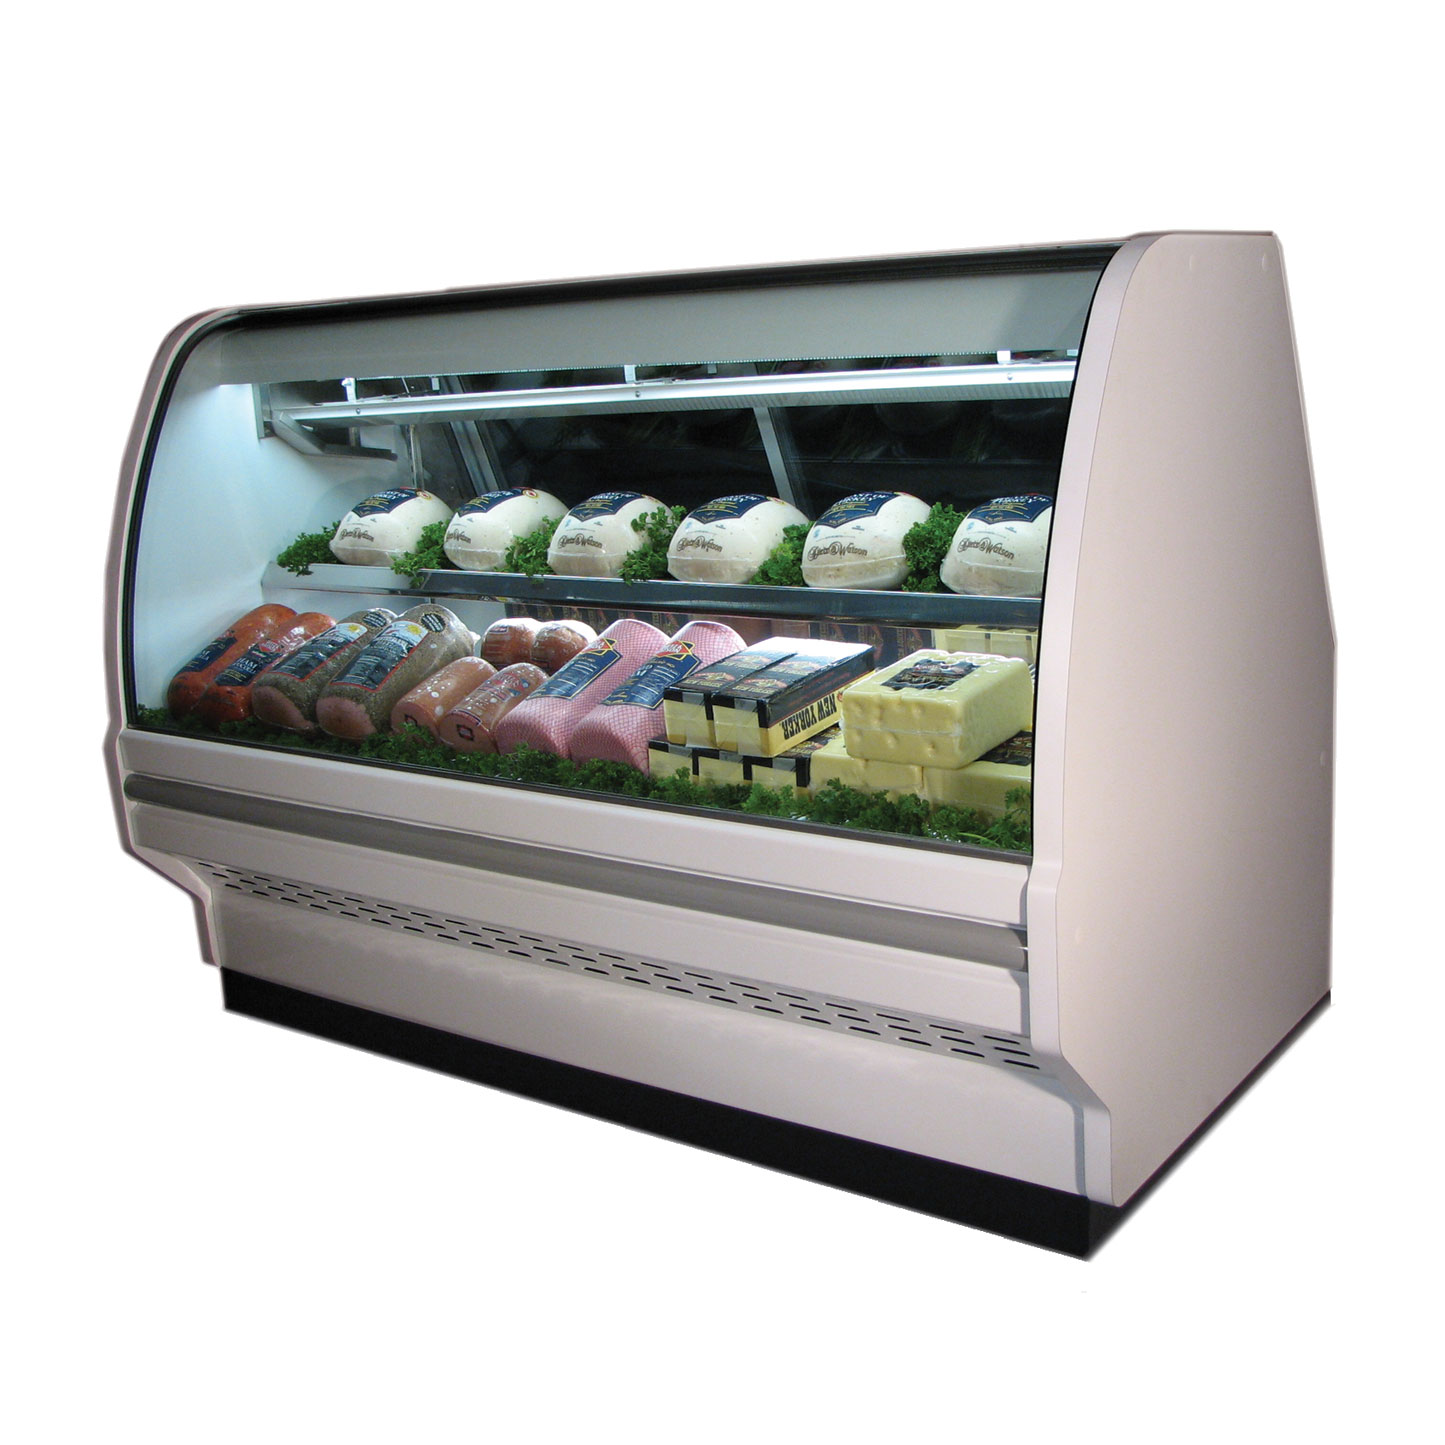 Howard-McCray R-CDS40E-4-LED display case, refrigerated deli